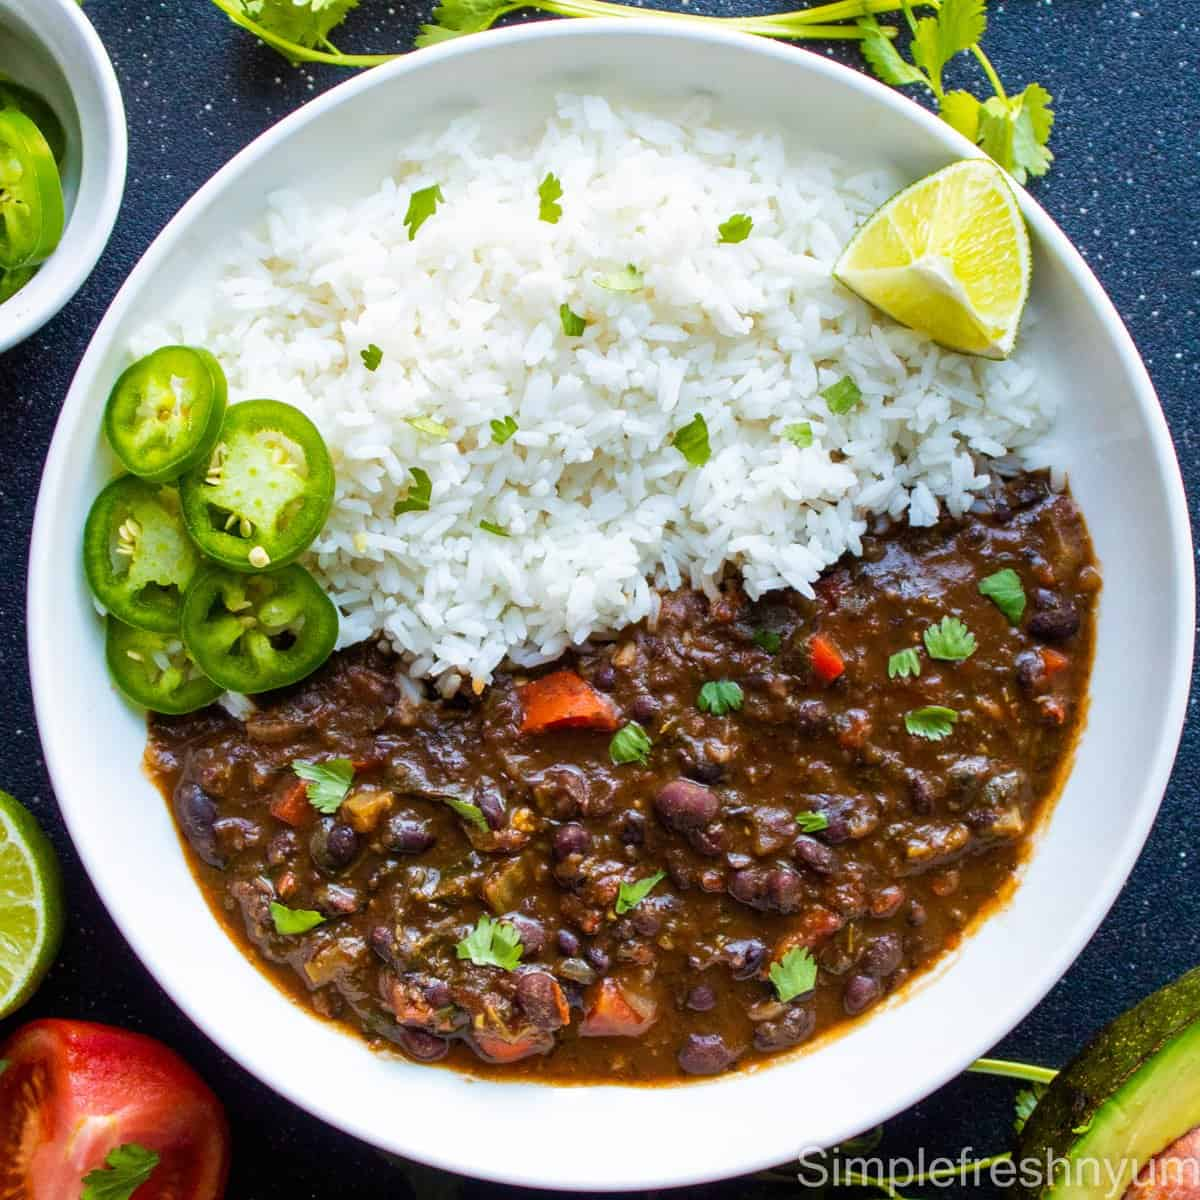 Black bean soup served with rice on a white plate with jalapeno slices and lemon wedge on the side with an avocado half, tomato slice and cilantro on the side of the plate